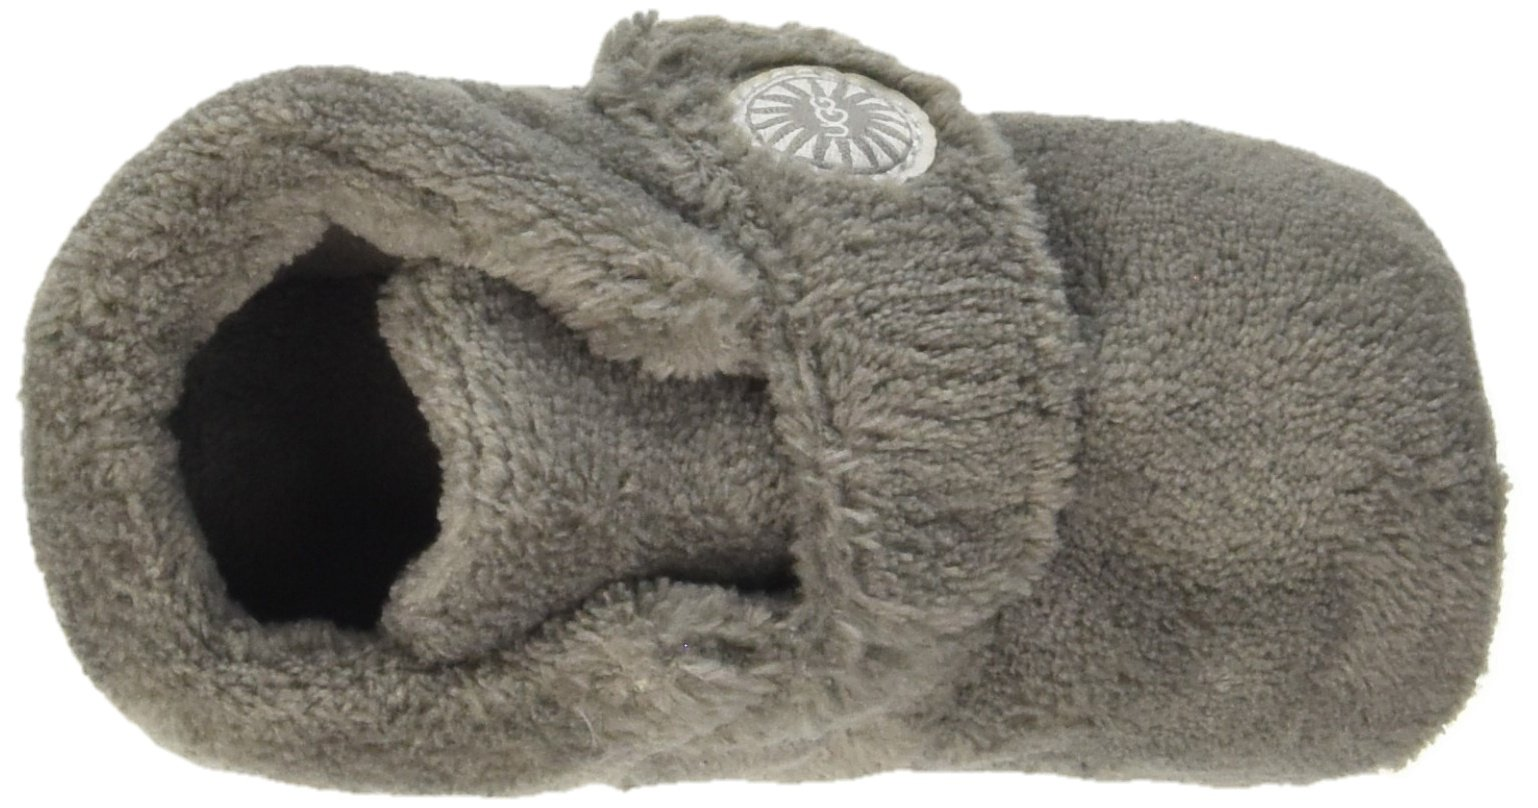 UGG Unisex Bixbee Bootie (Infant/Toddler), Charcoal, 2/3 (6-12 Months) M by UGG (Image #8)